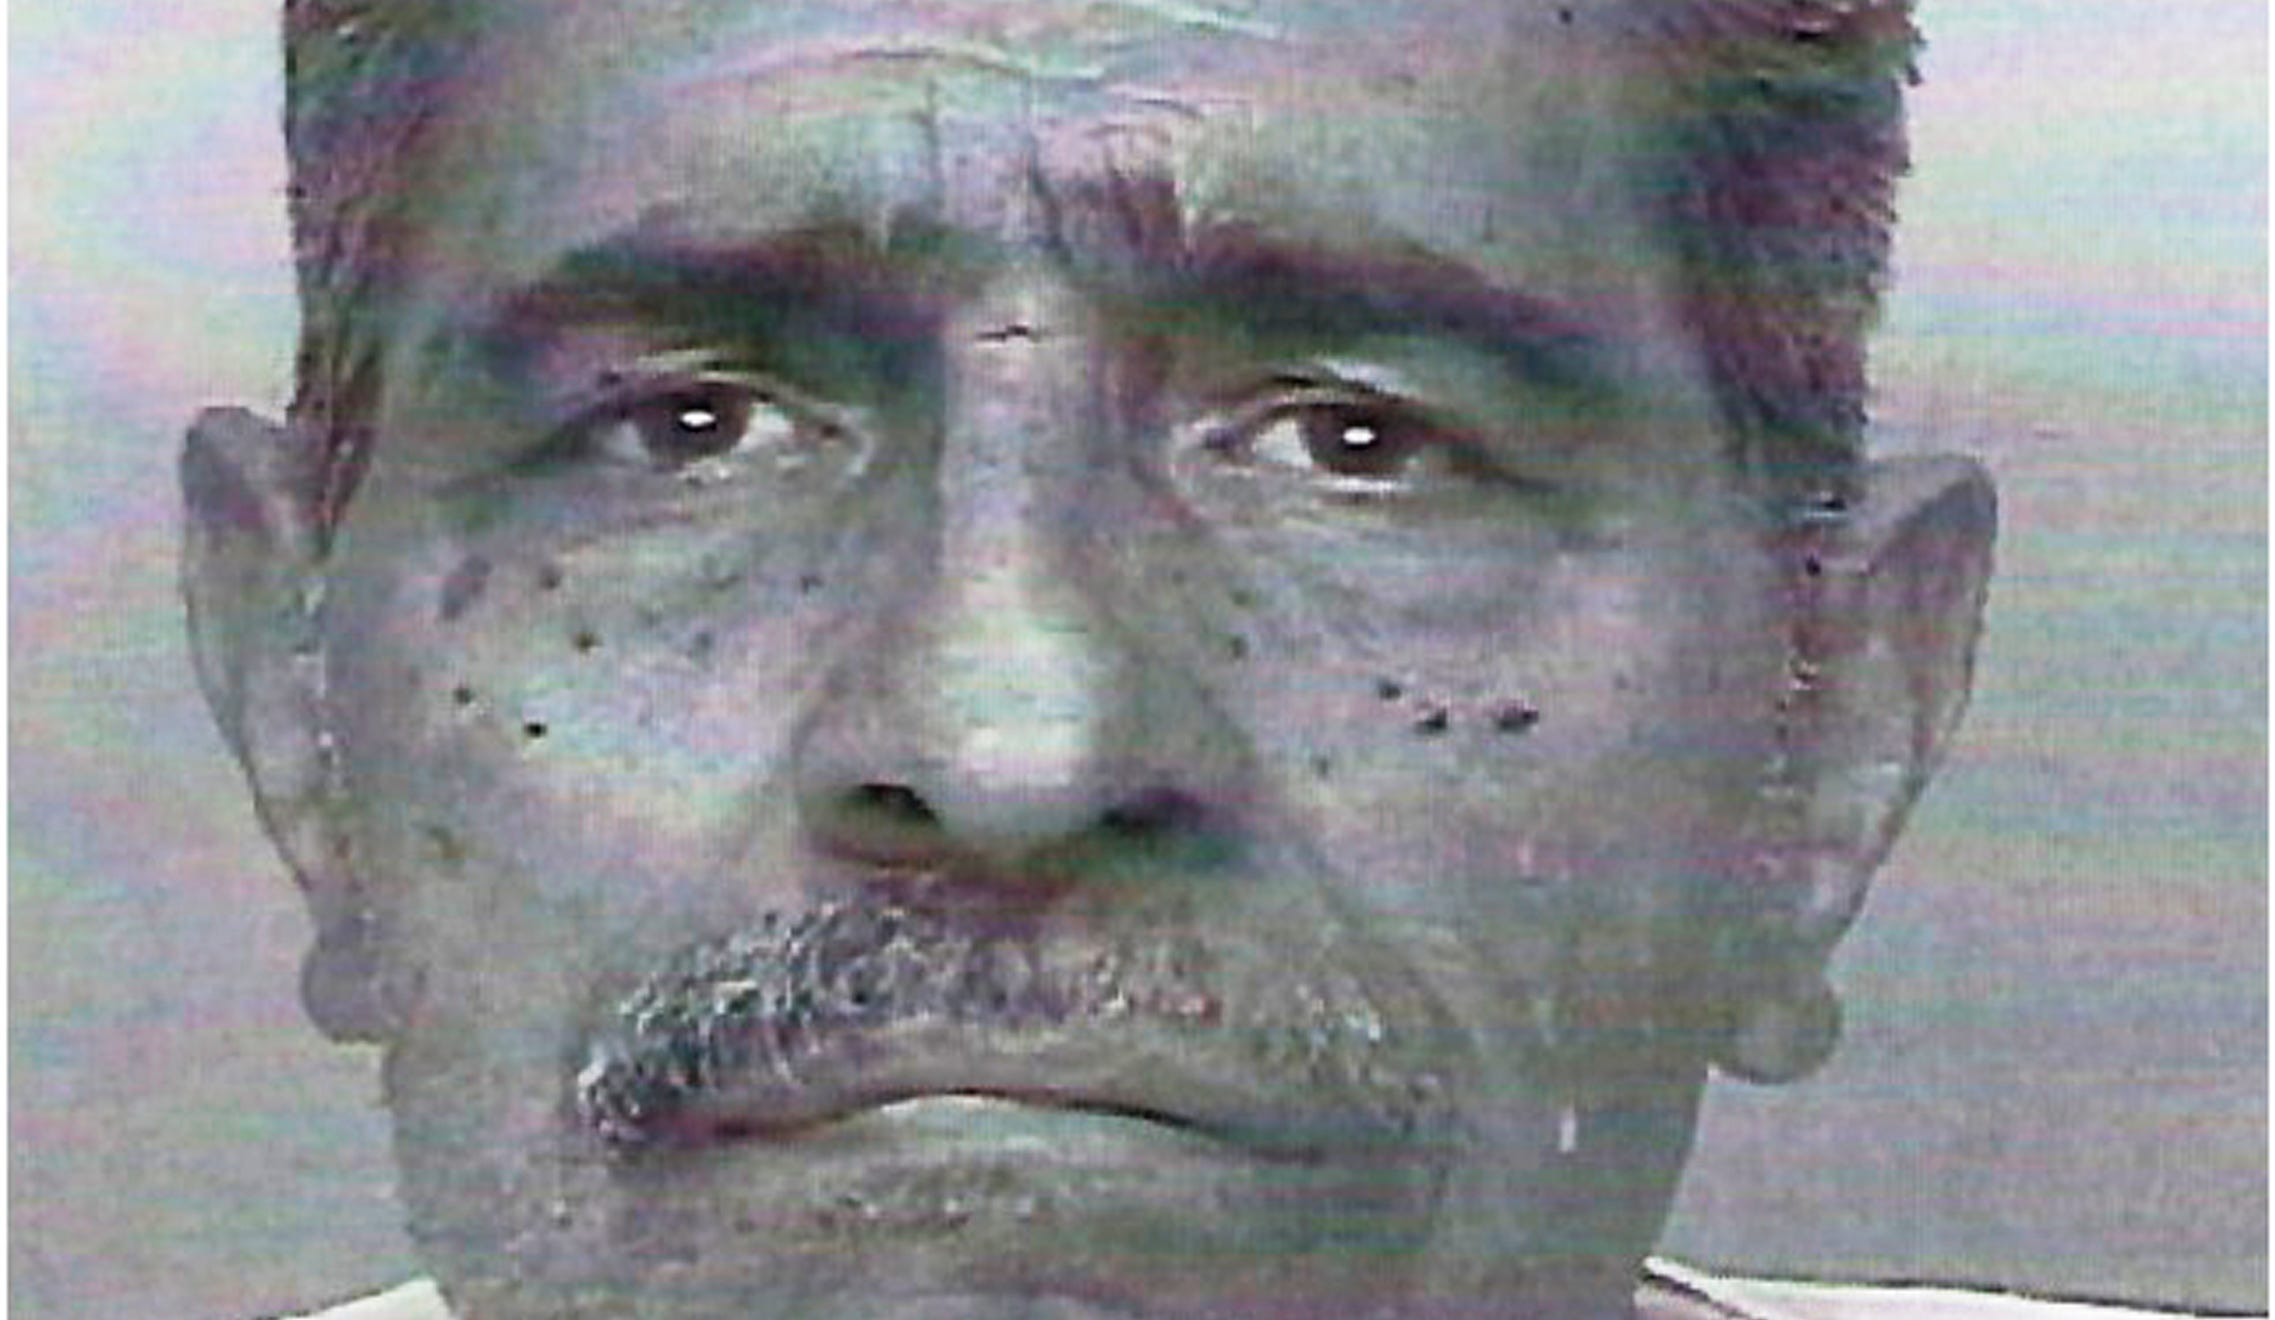 This undated photo provided by the San Luis Obispo County Sheriff's Office shows Arthur Rudy Martinez. Authorities say DNA evidence has linked the cold-case rape and murder of two women in California's Central Coast to a man who died in a prison in Washington state. The San Luis Obispo County Sheriff's Office said Wednesday, April 17, 2019 that DNA obtained from items owned by Martinez recently matched DNA left by the suspect in two killings in Atascadero in the late 1970s.